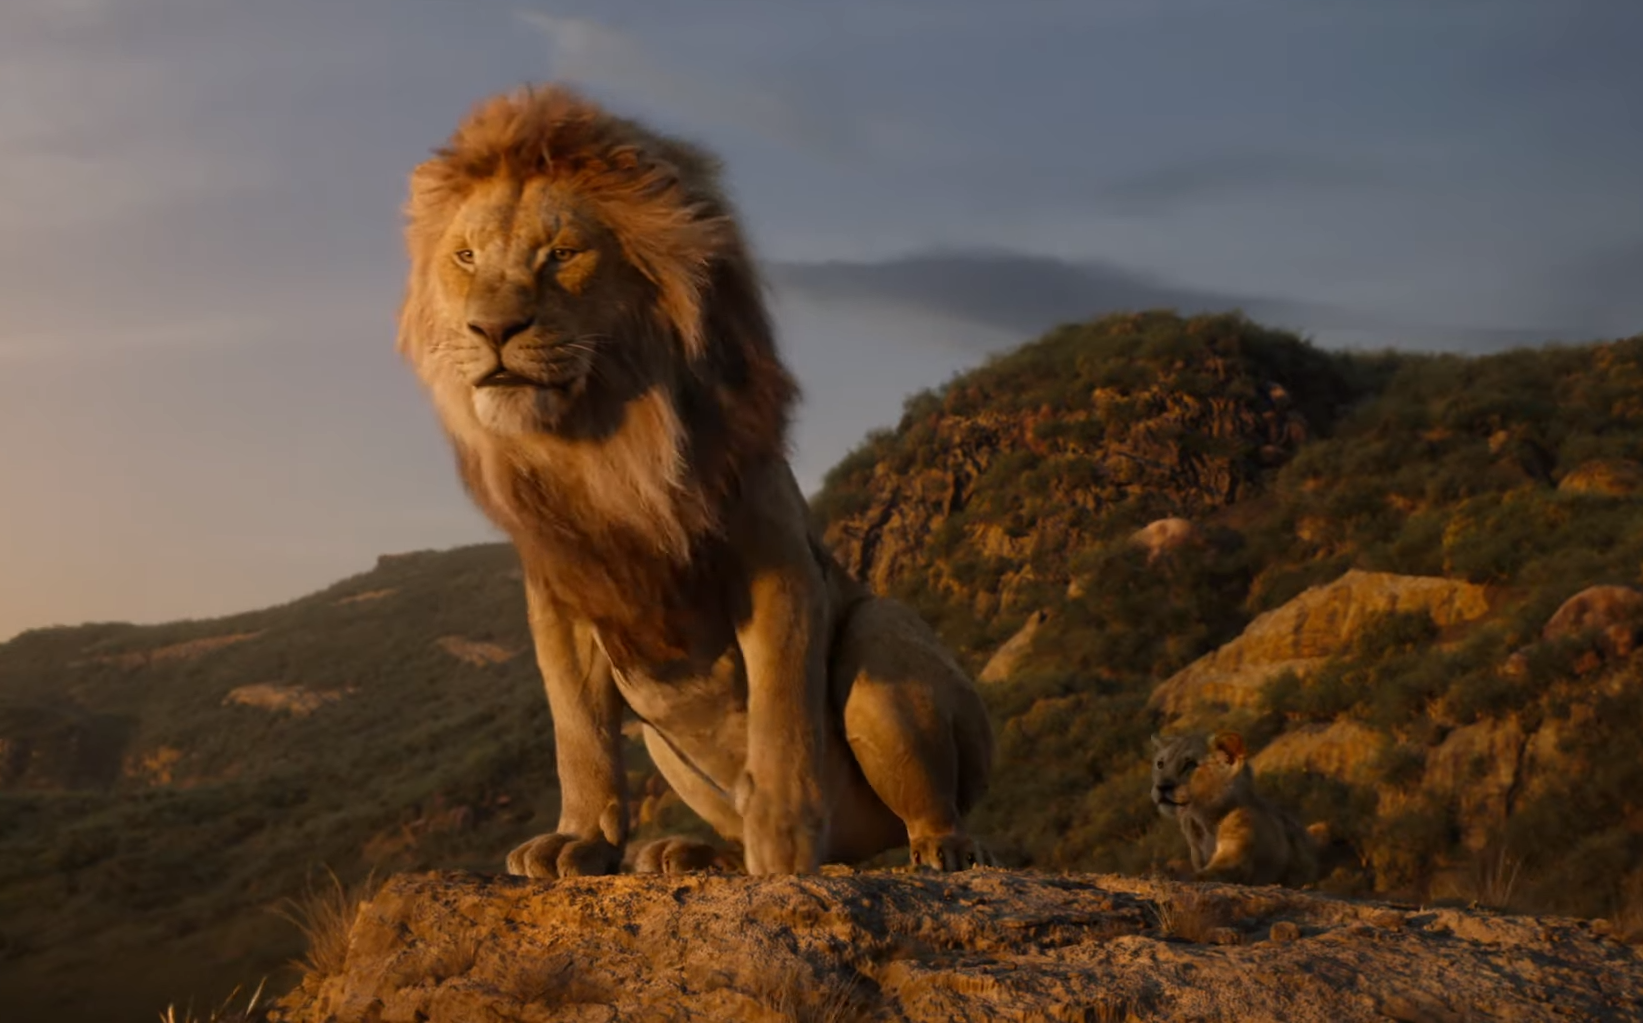 This is a photo of Declarative Lion King Pictures